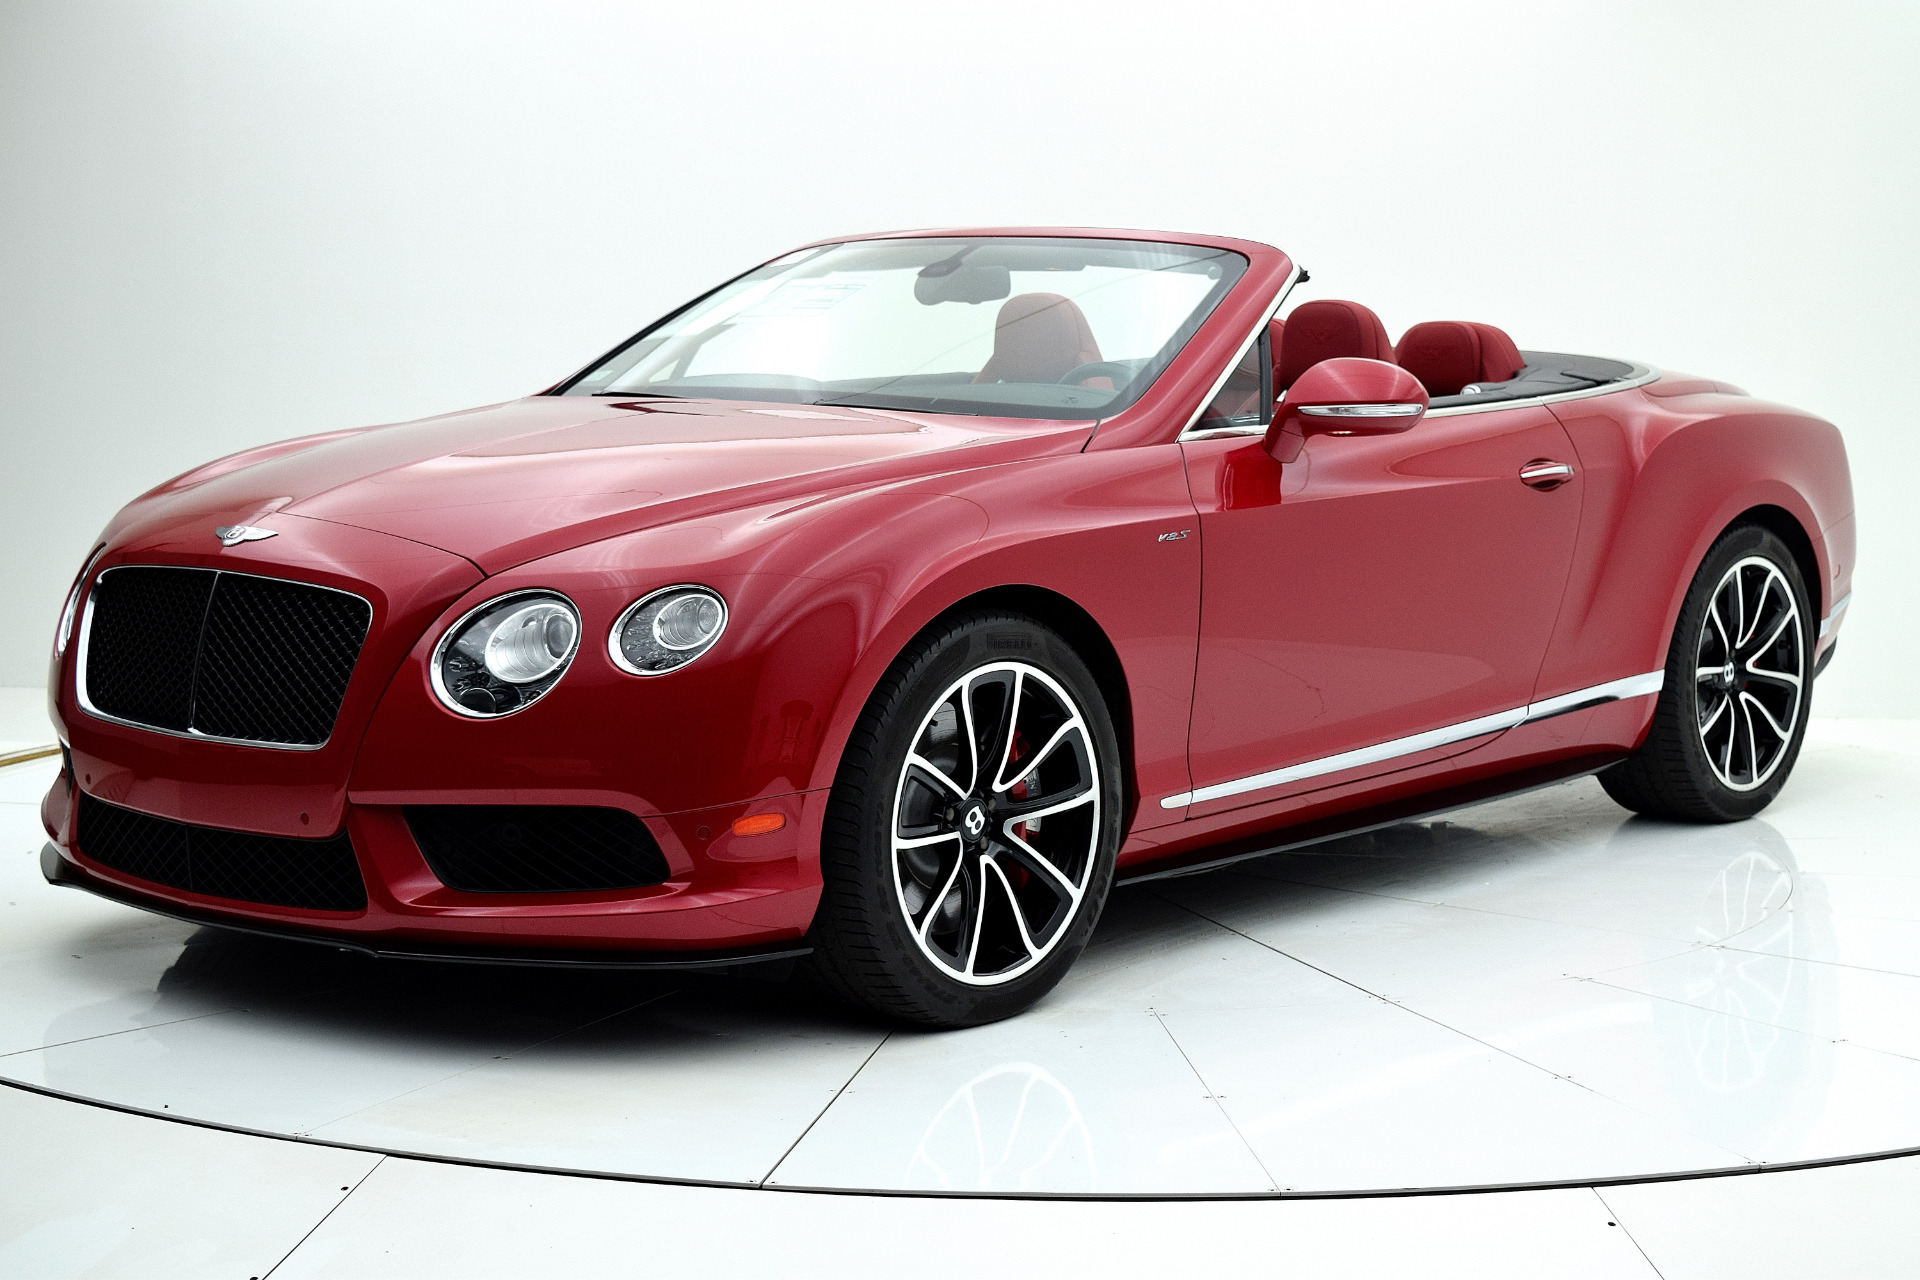 Bentley Continental GT V8 S 2014 For Sale $129880 Stock Number 1499JI